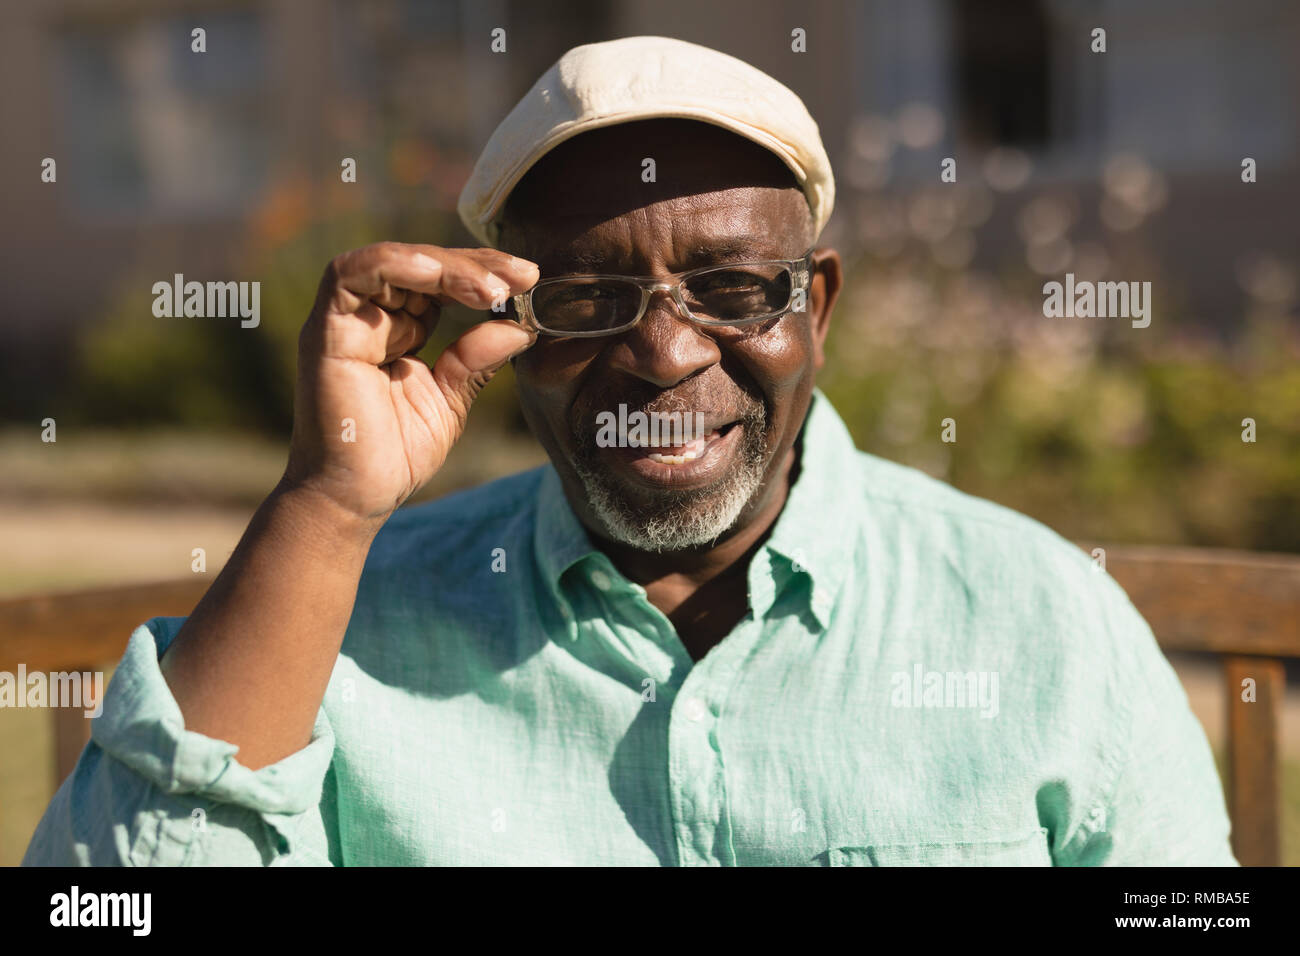 Senior man in spectacle smiling in the park - Stock Image